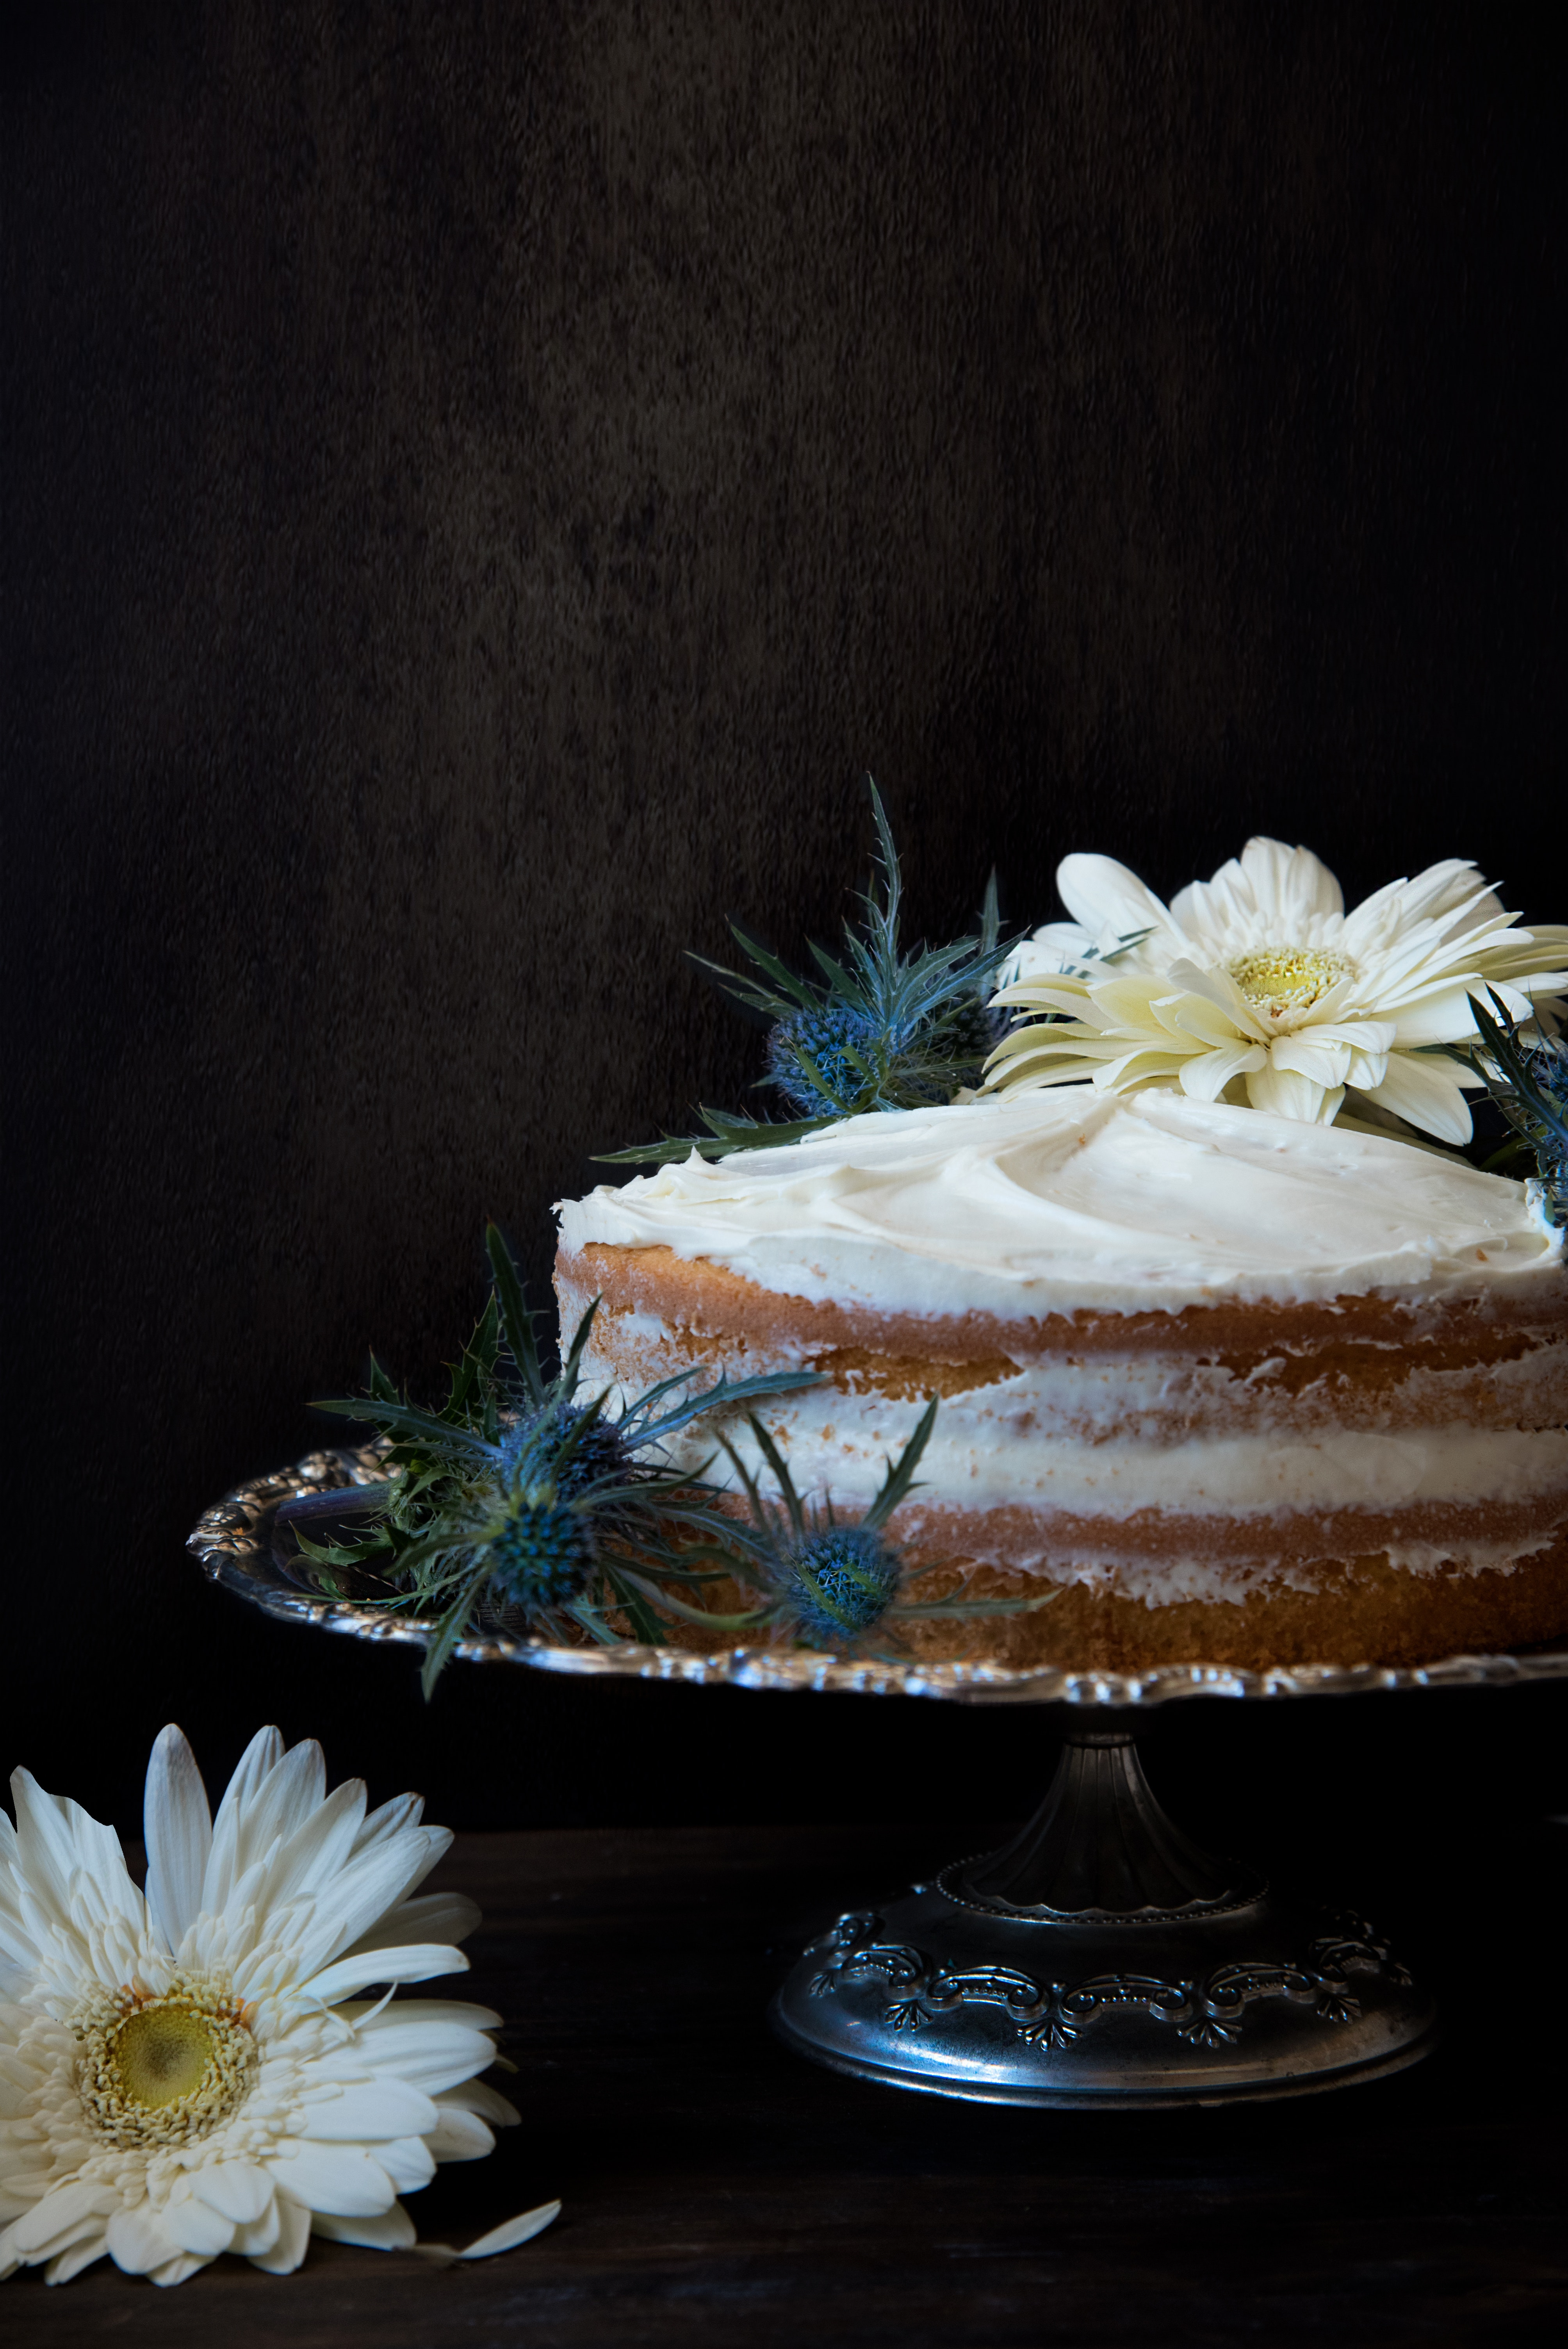 Cake With Icing on Top Silver Cake Stand, Plate, Silver plate, Still life, Pastry, HQ Photo